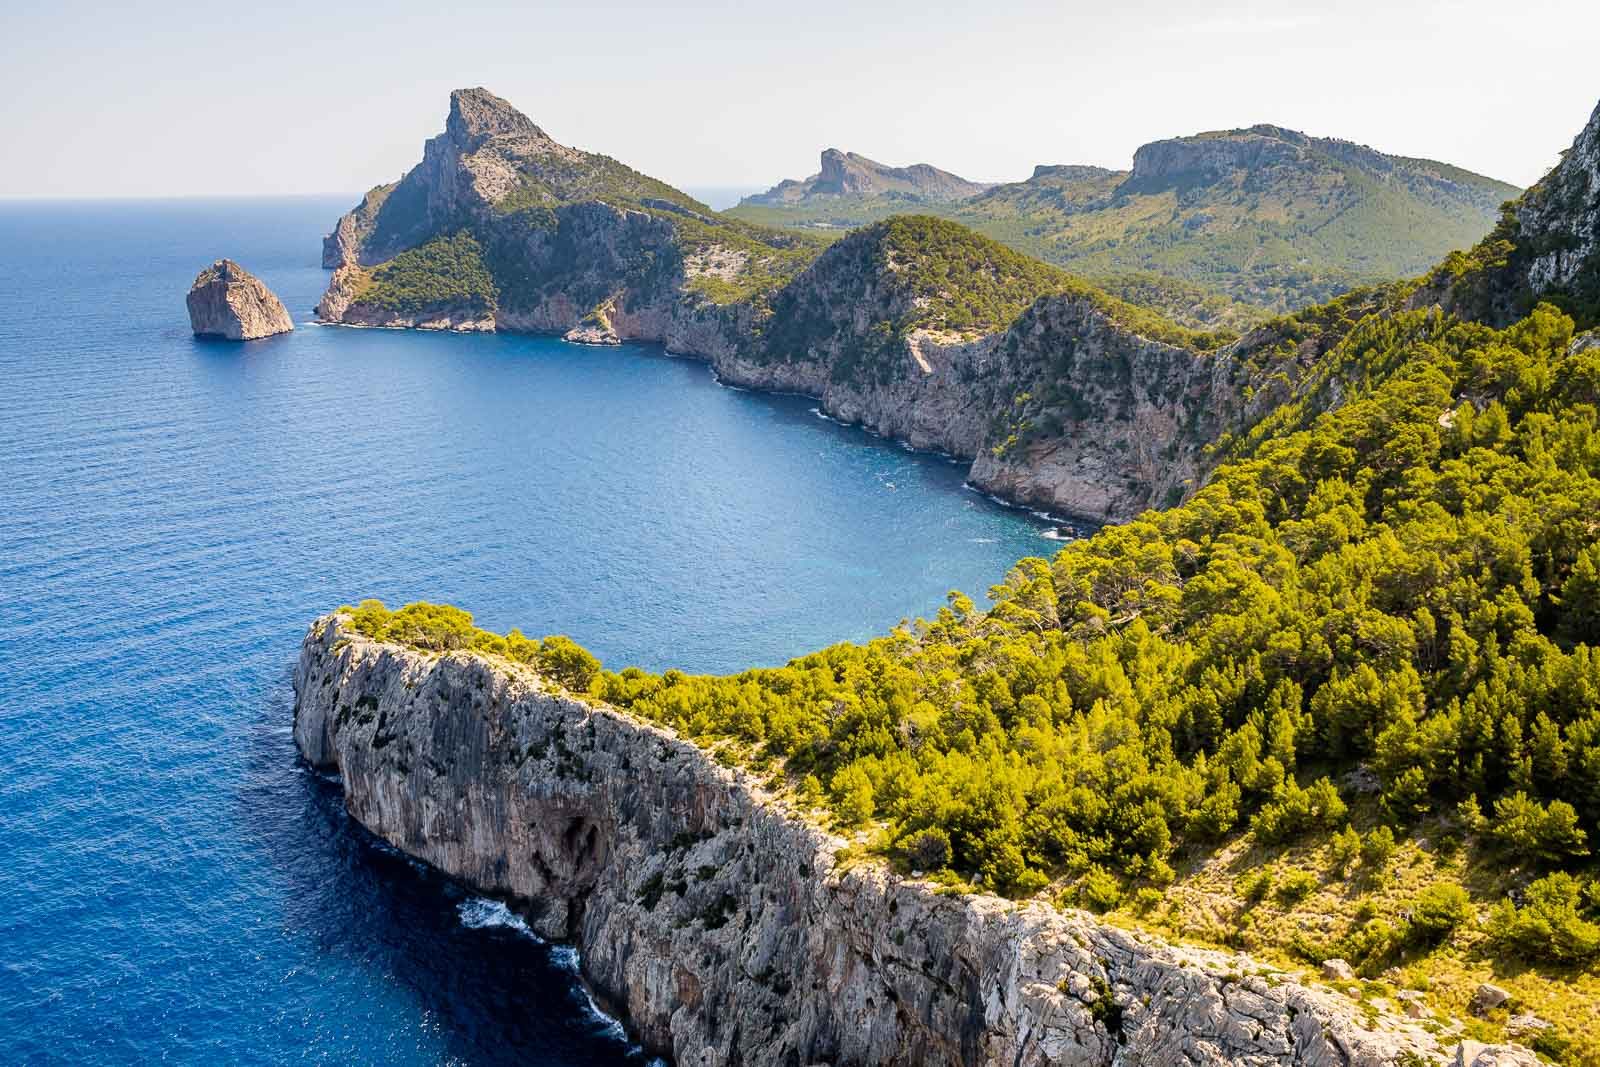 Mirador Es Colomer viewpoint that you need to see on your Mallorca road trip